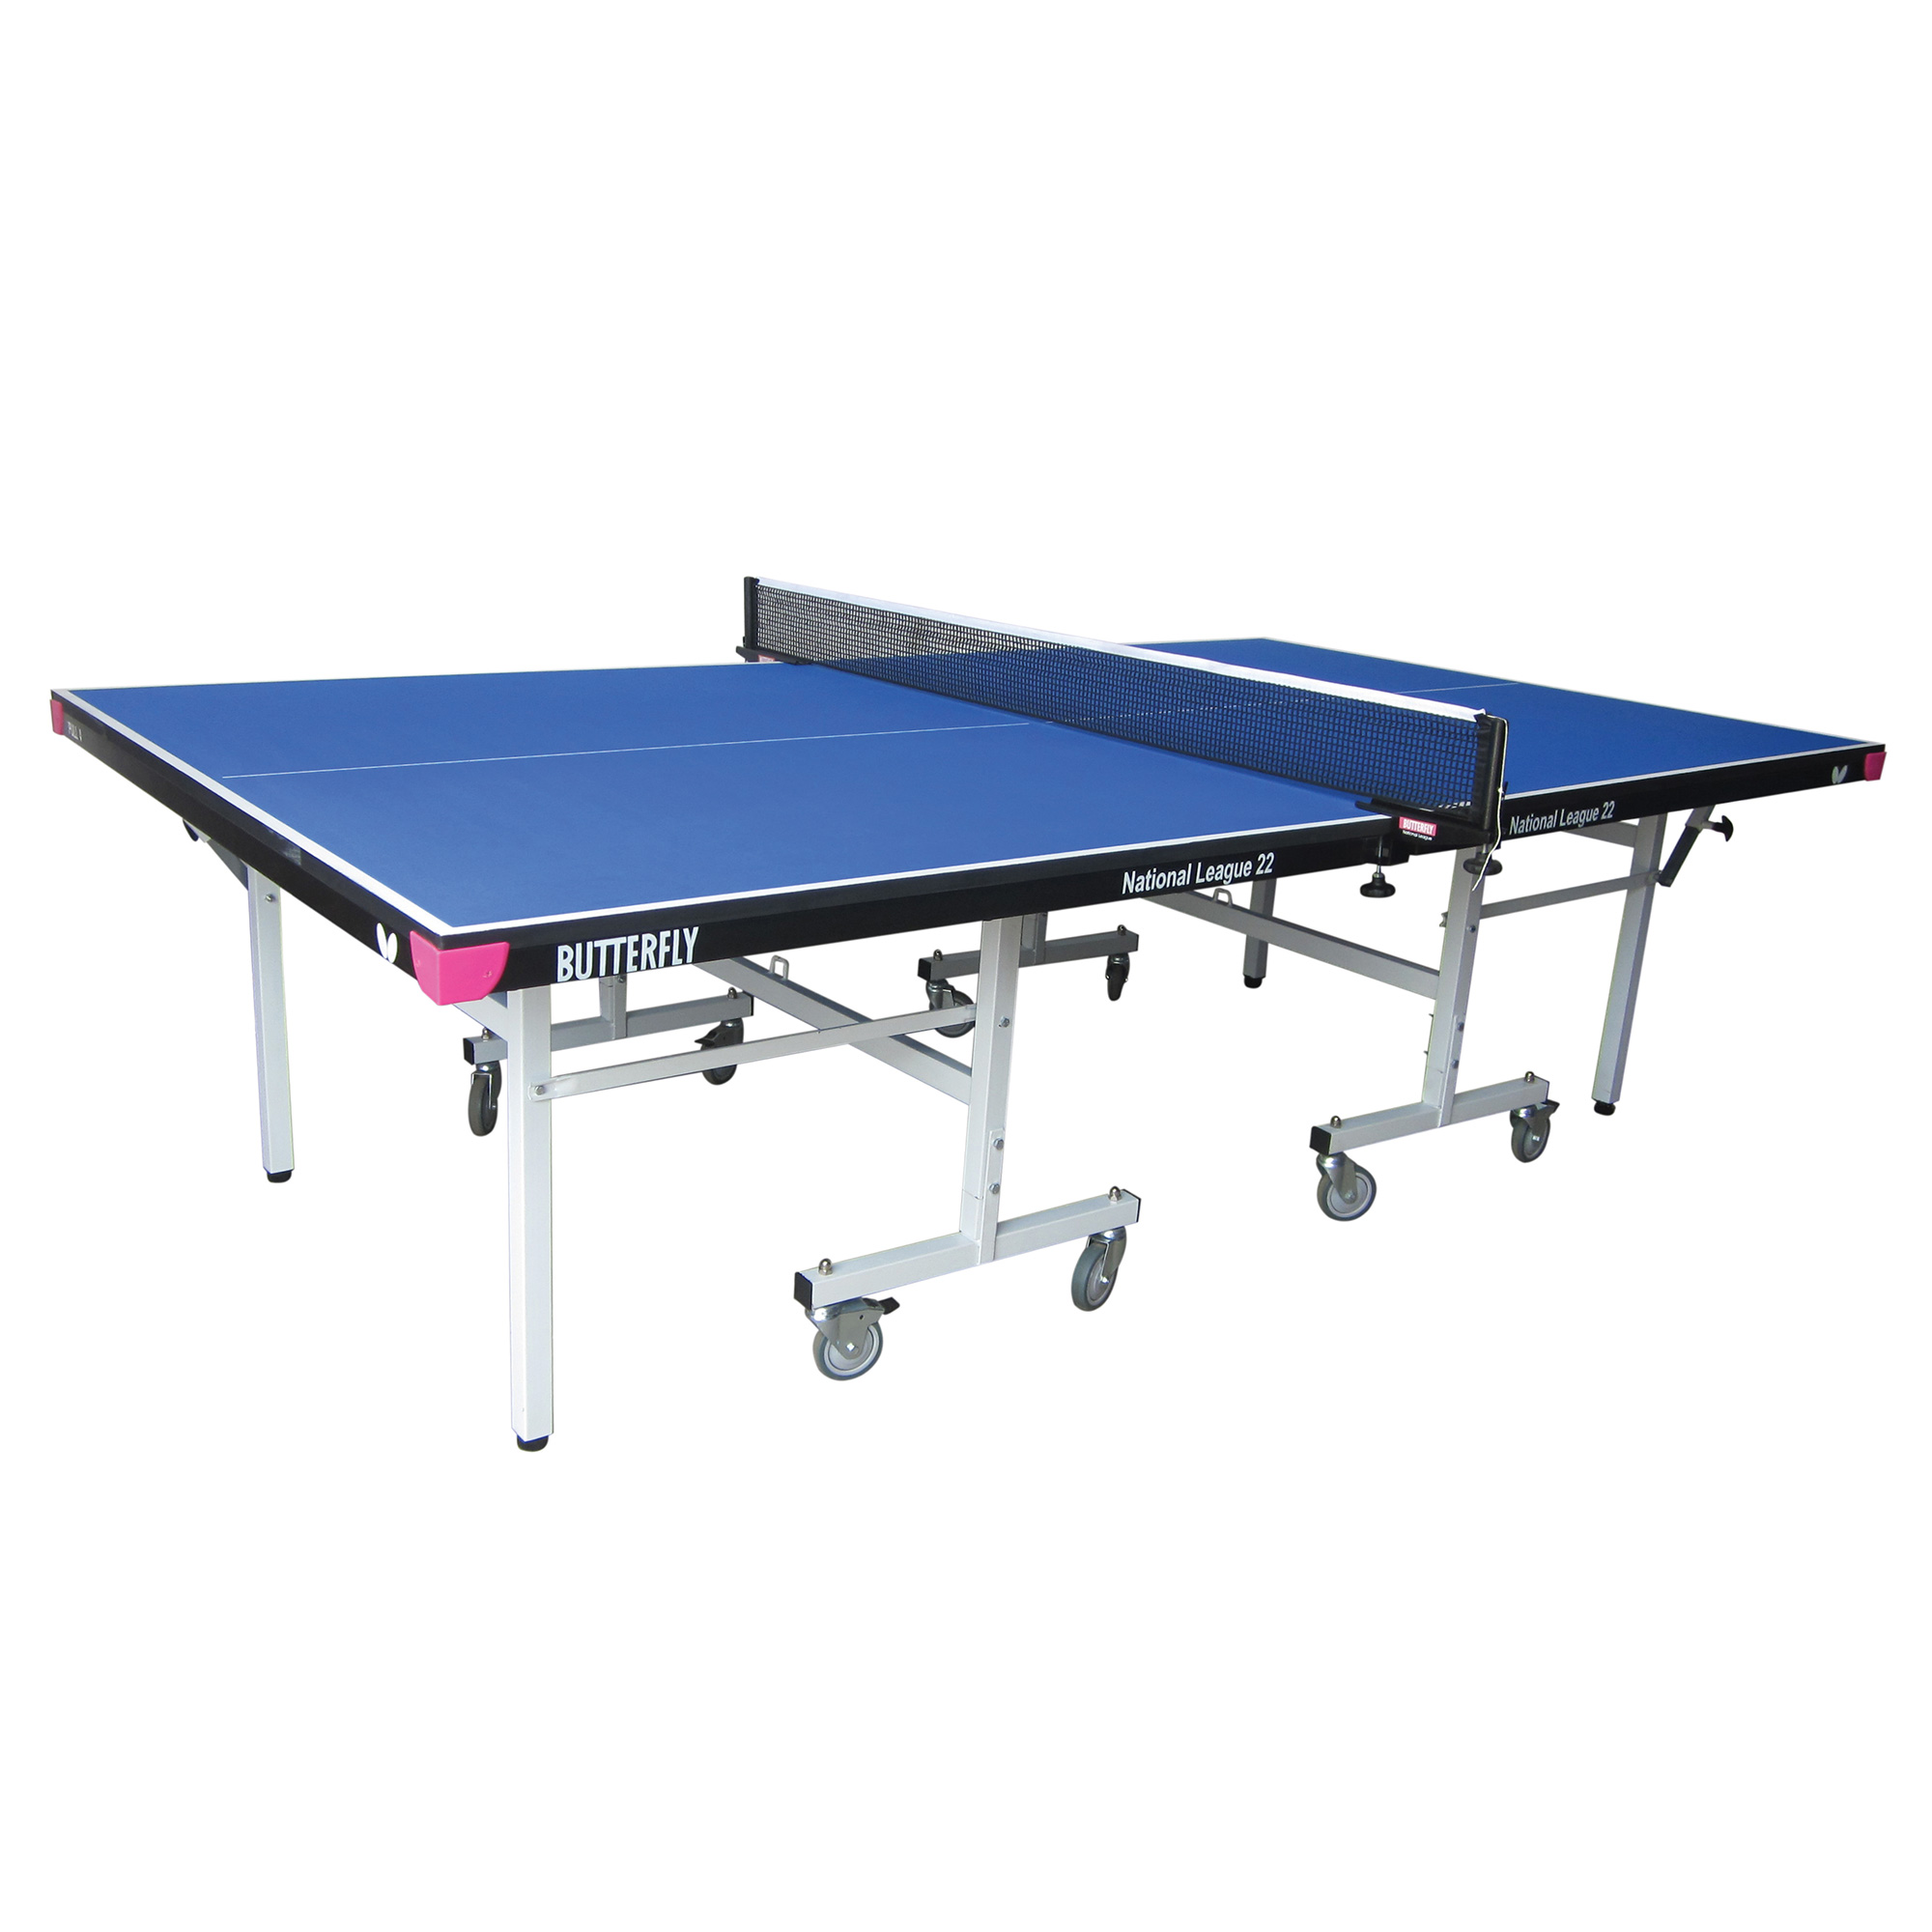 Butterfly National League 22 Rollaway Indoor Table Tennis Table  Blue